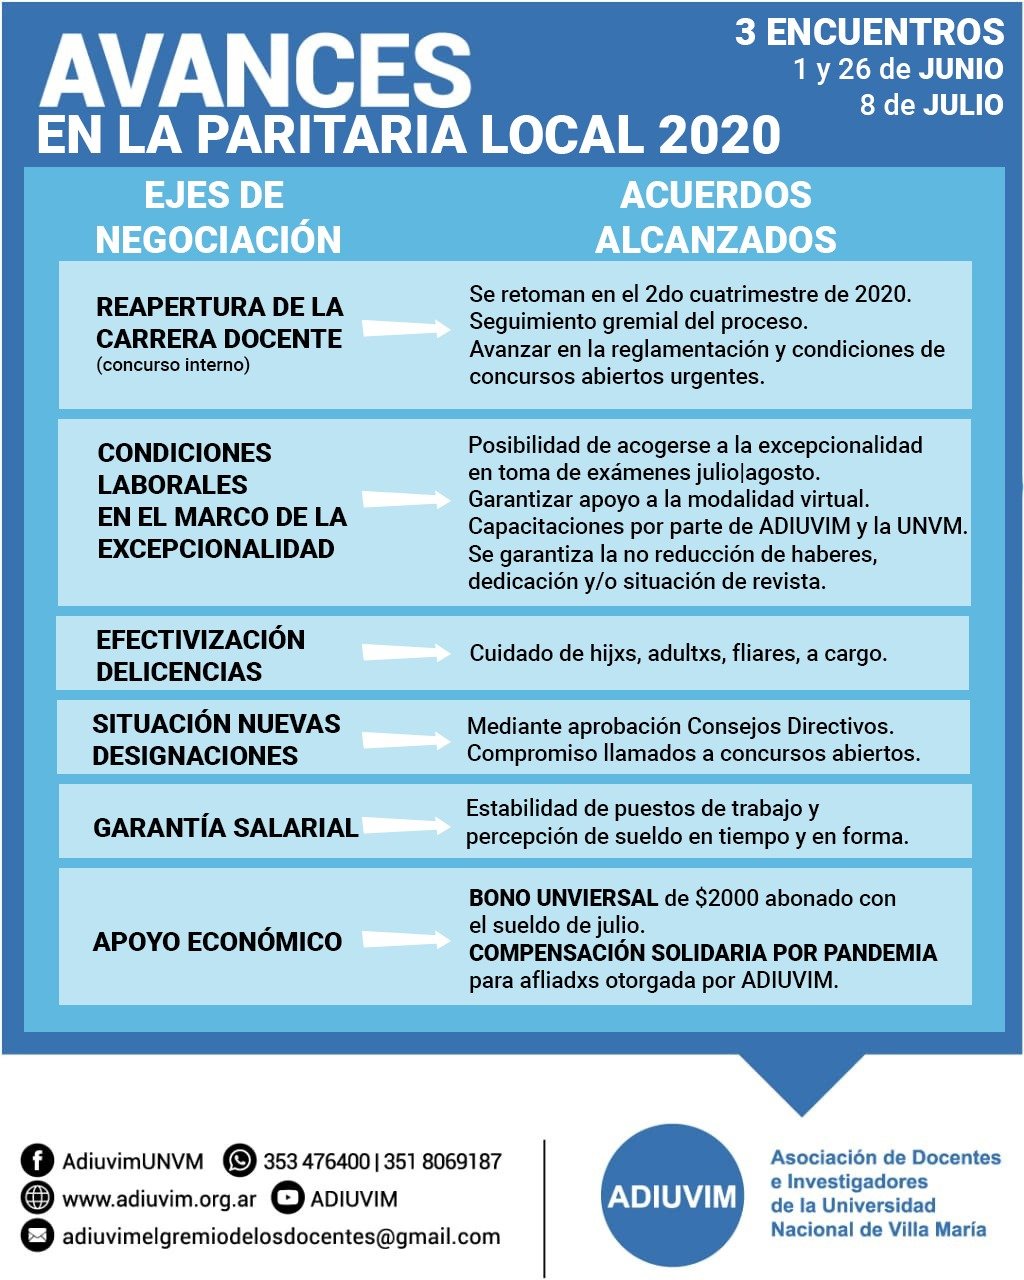 Negociaciones y Avances en las Paritarias Local y Nacional